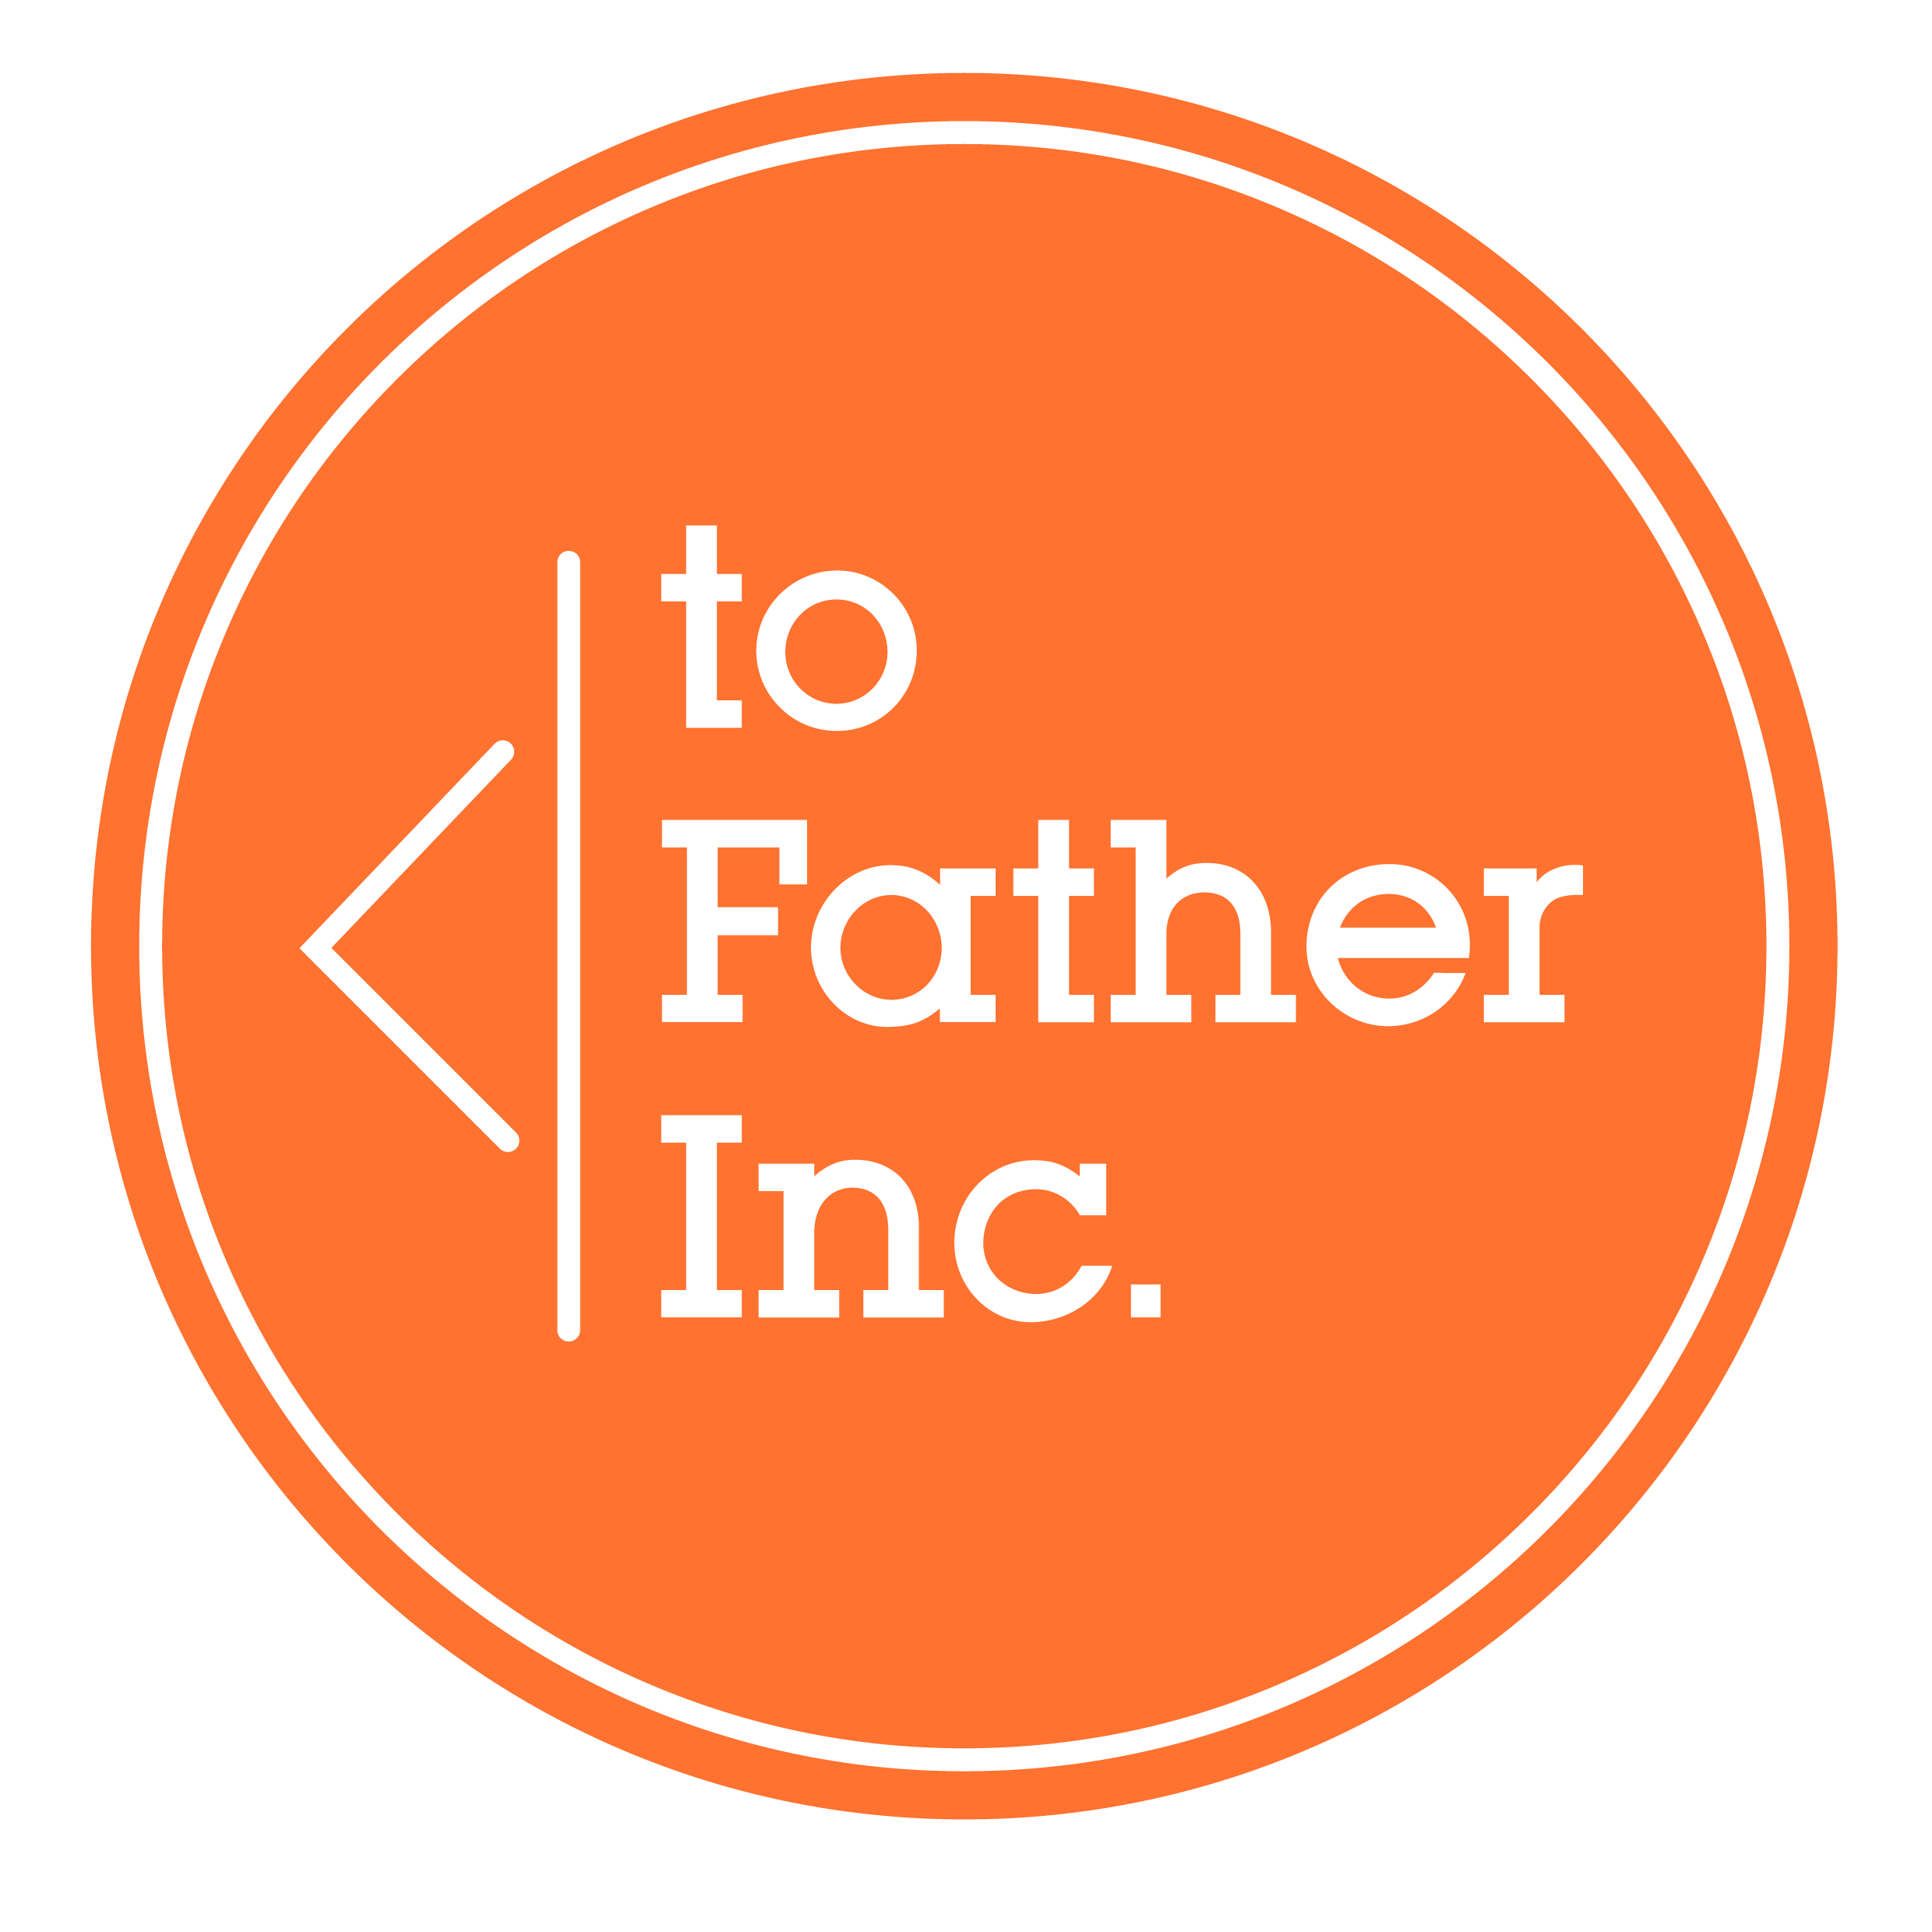 To Father Inc.